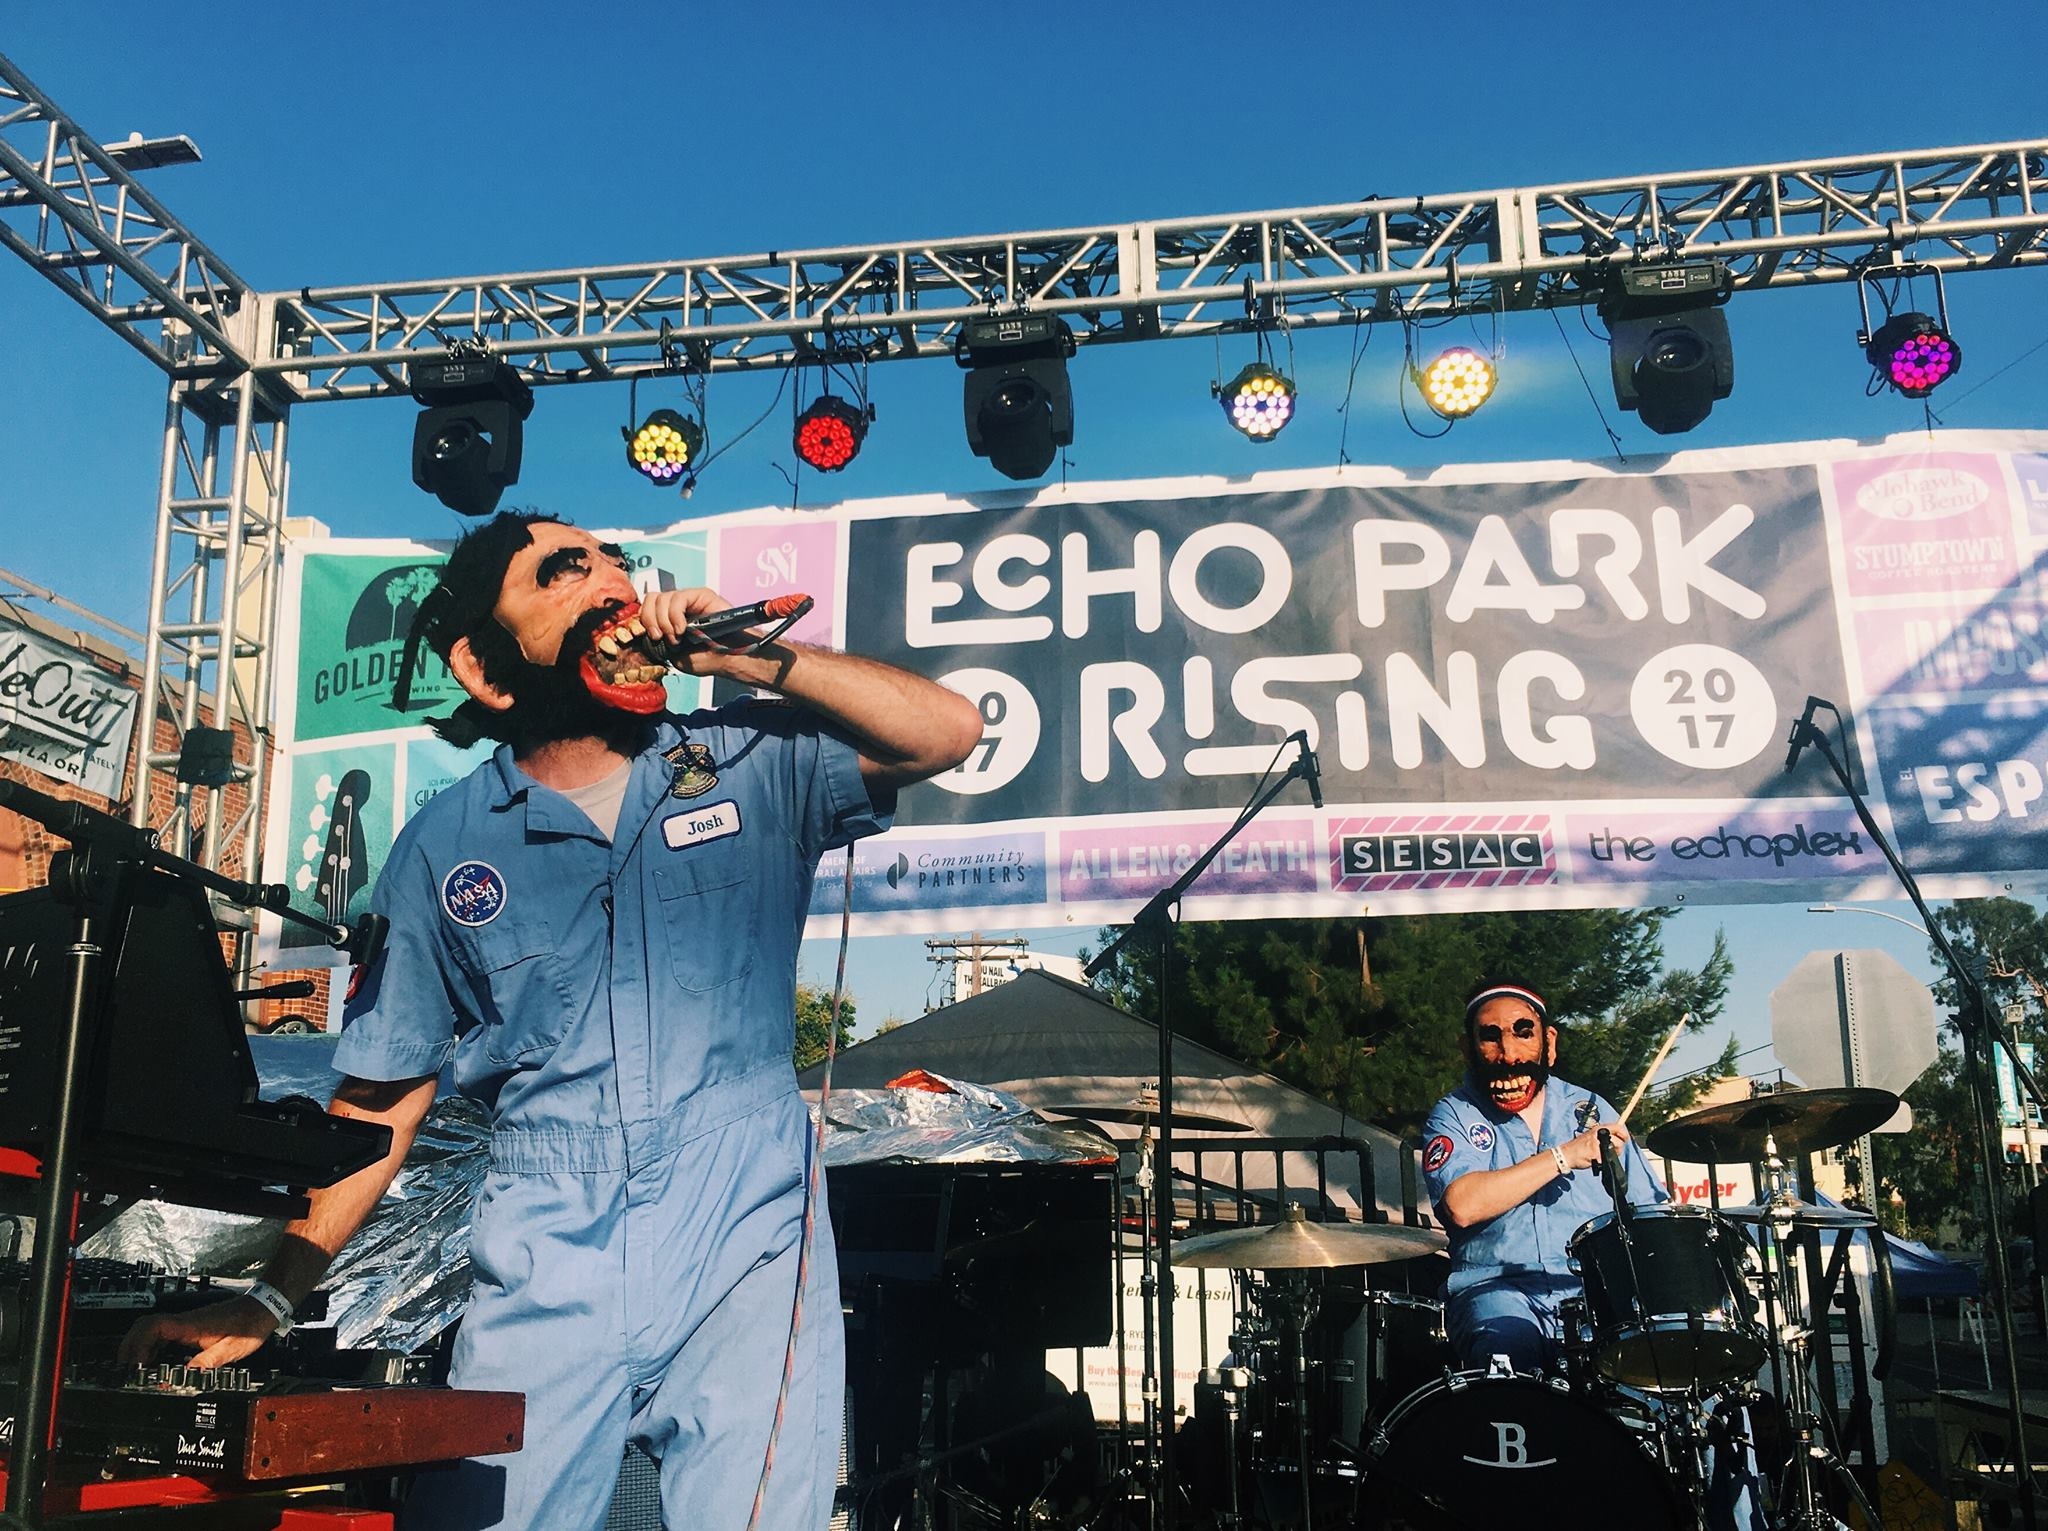 FESTIVAL REVIEW: Highlights from Echo Park Rising